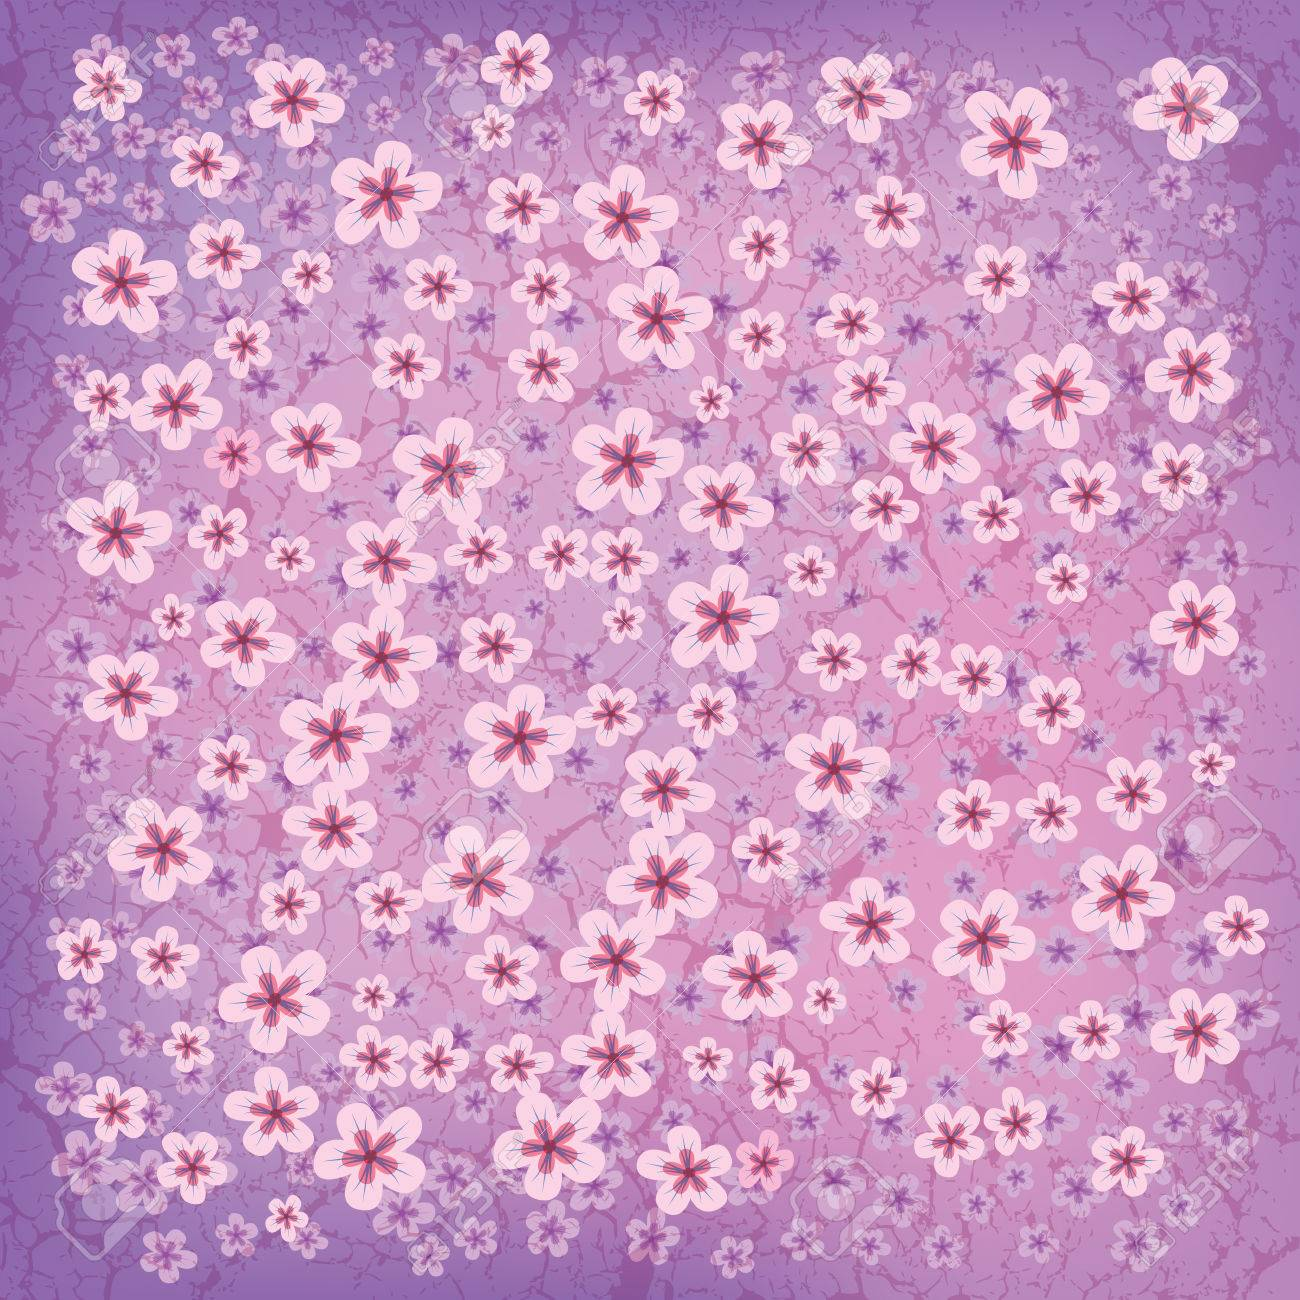 abstract floral background with small flowers on pink Stock Vector - 8984201